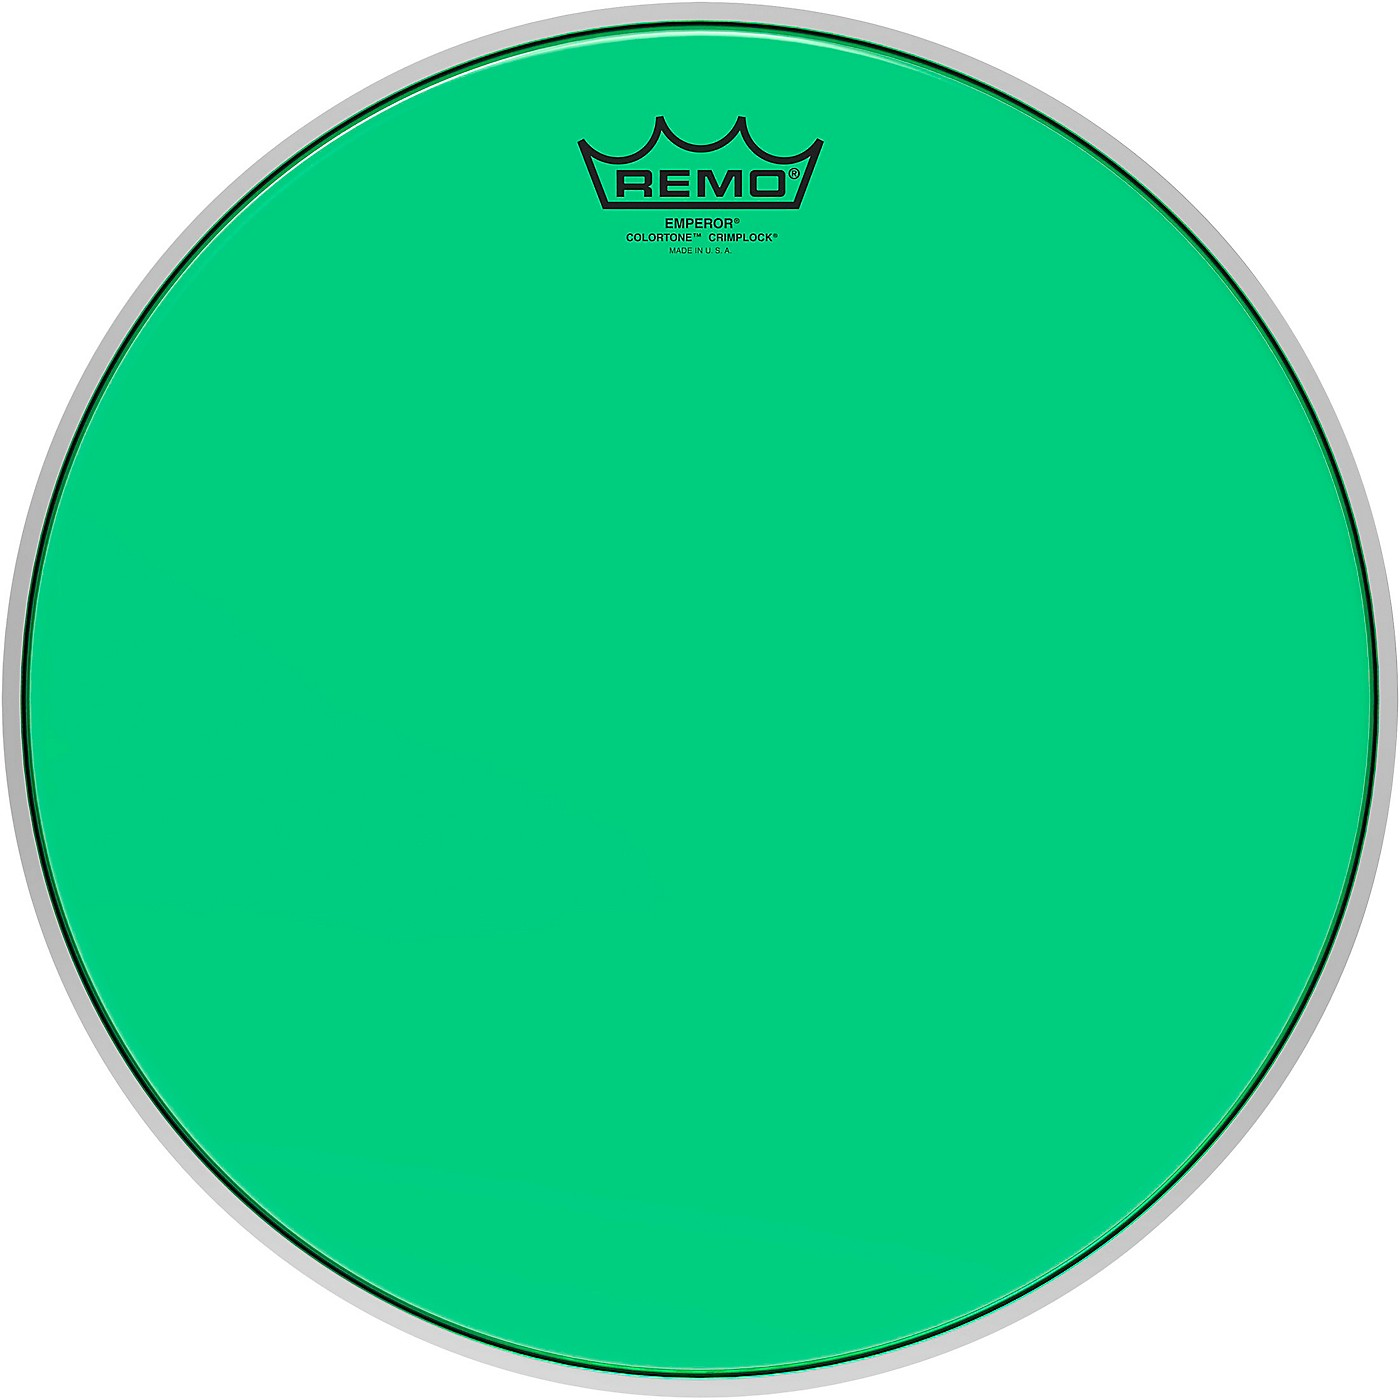 Remo Emperor Colortone Crimplock Green Tenor Drum Head thumbnail